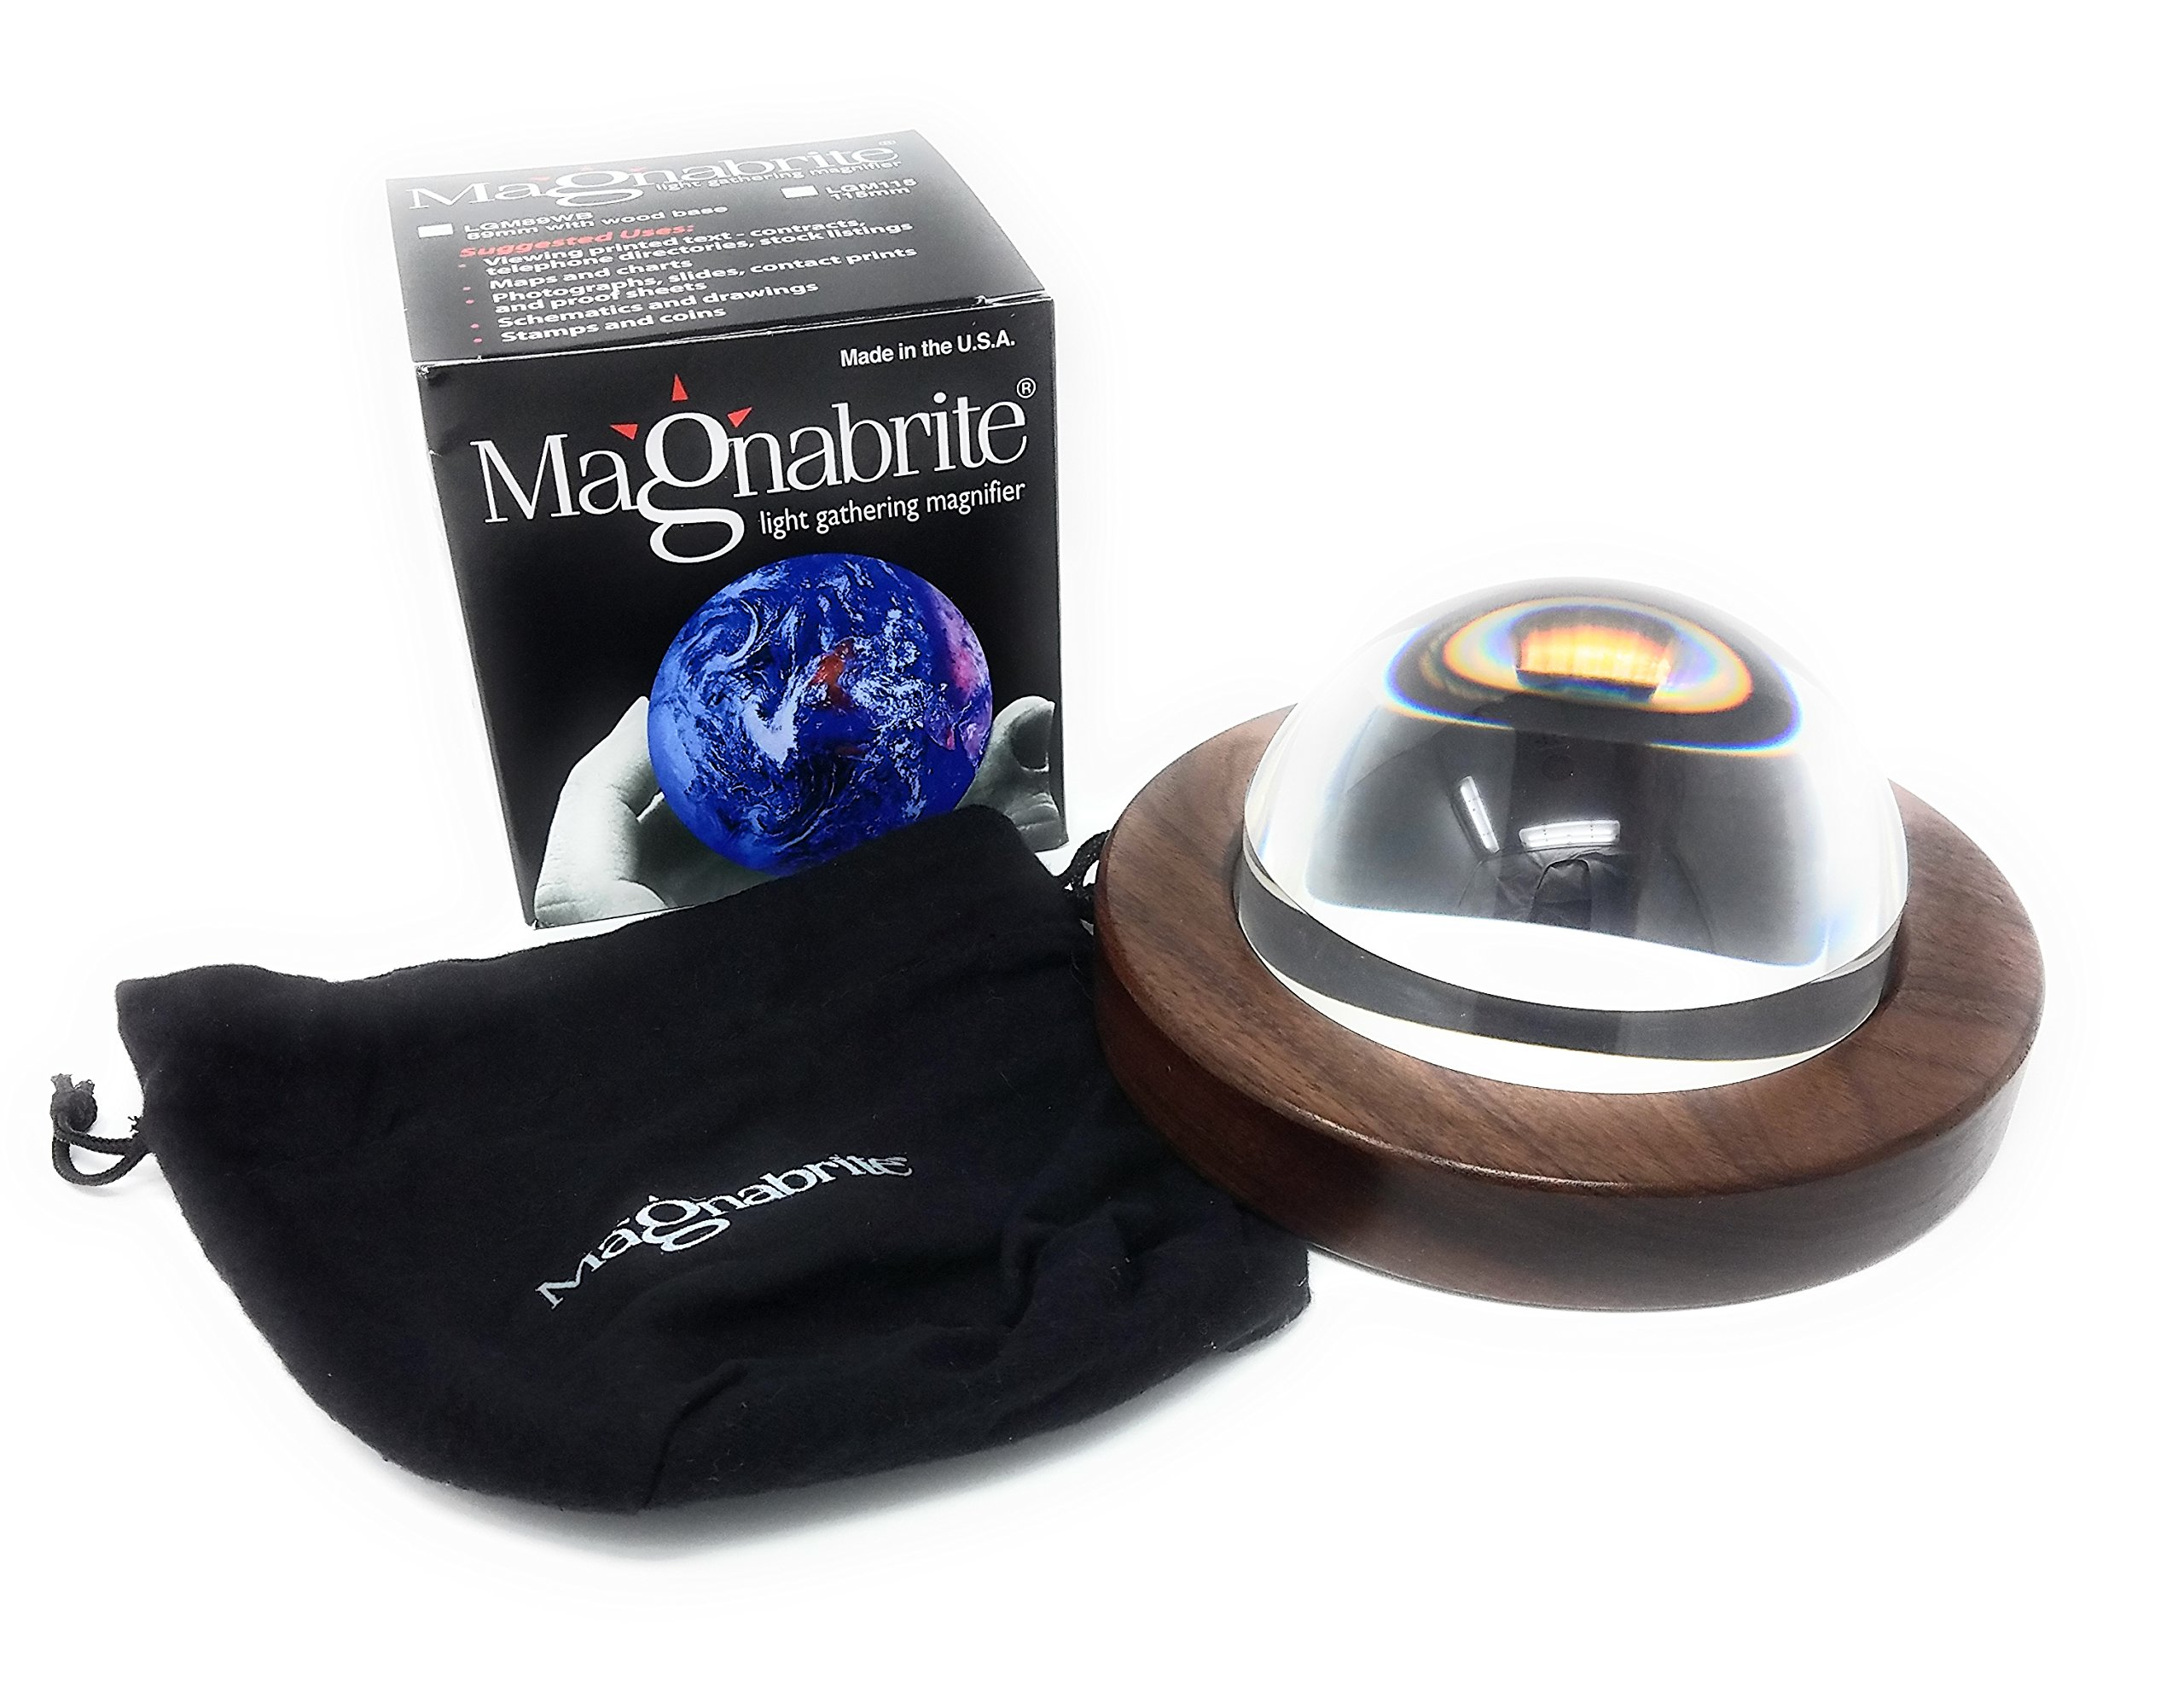 Magnabrite 4.5 inch Light Gathering Dome Magnifier with Round Walnut Base, new